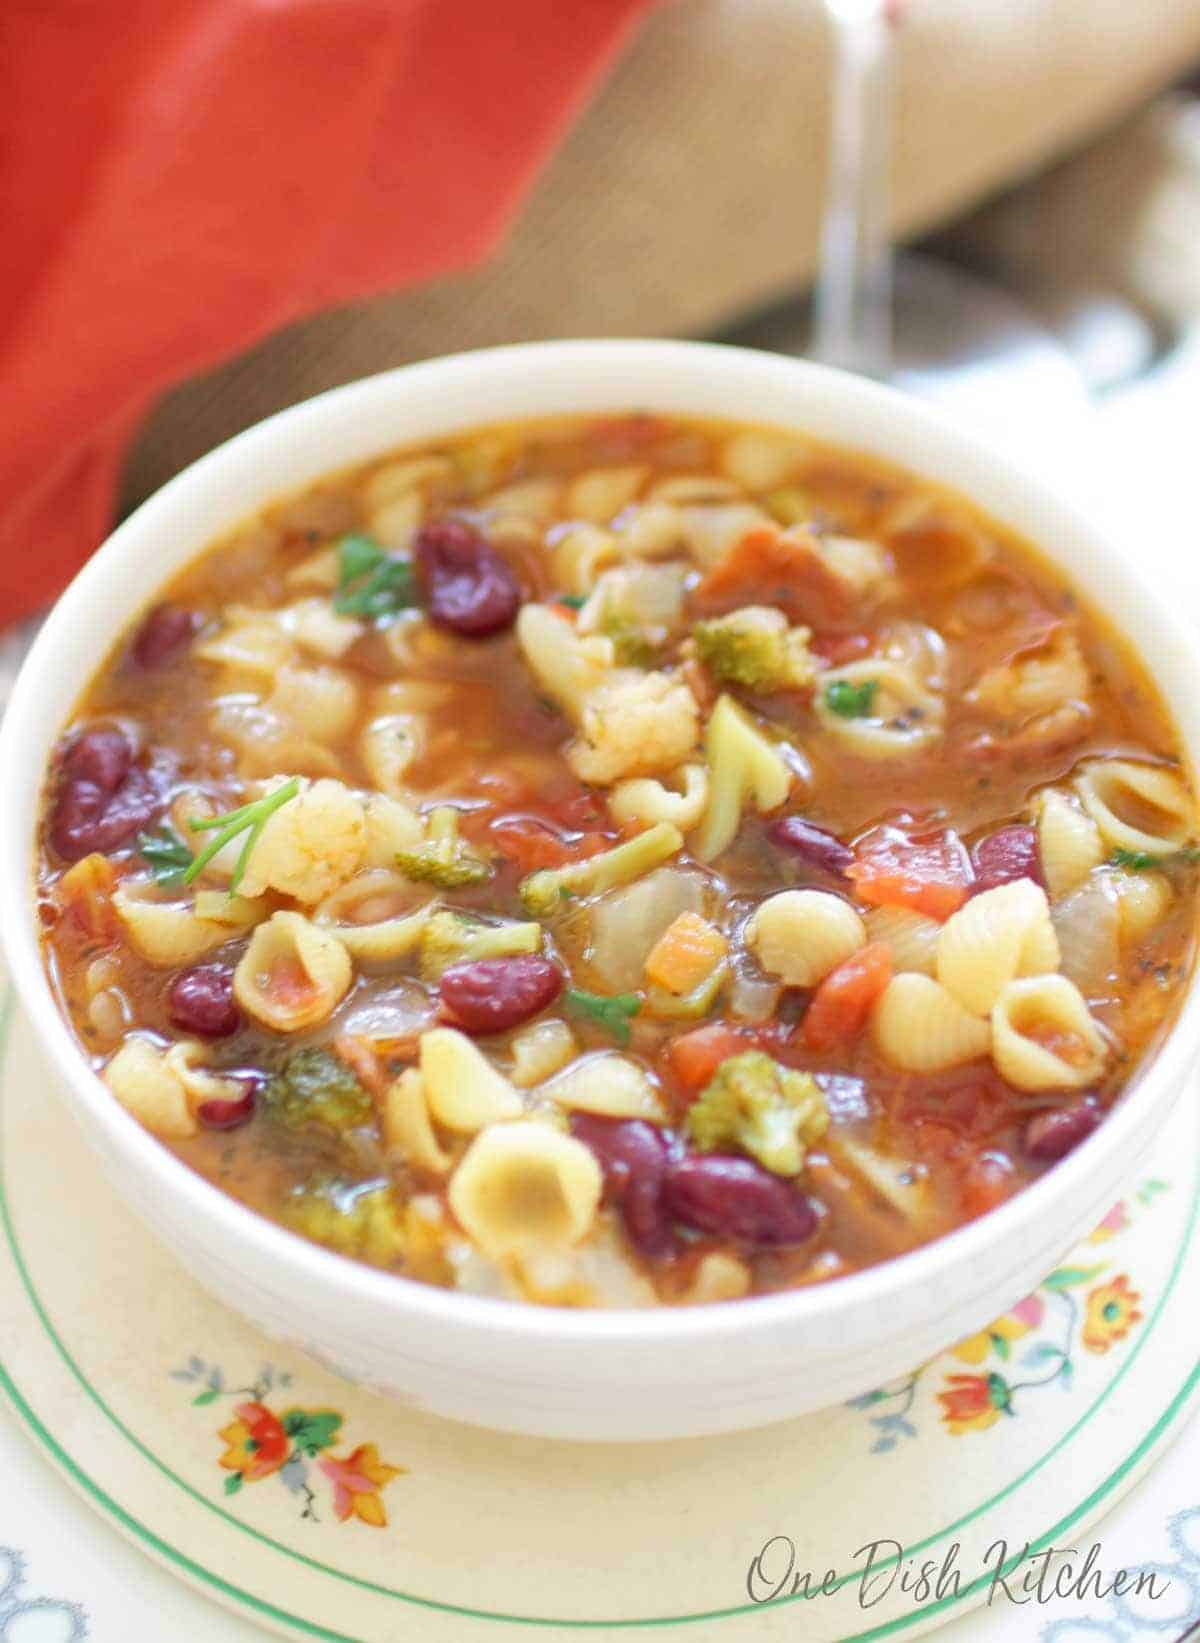 An overhead view of a bowl of minestrone soup